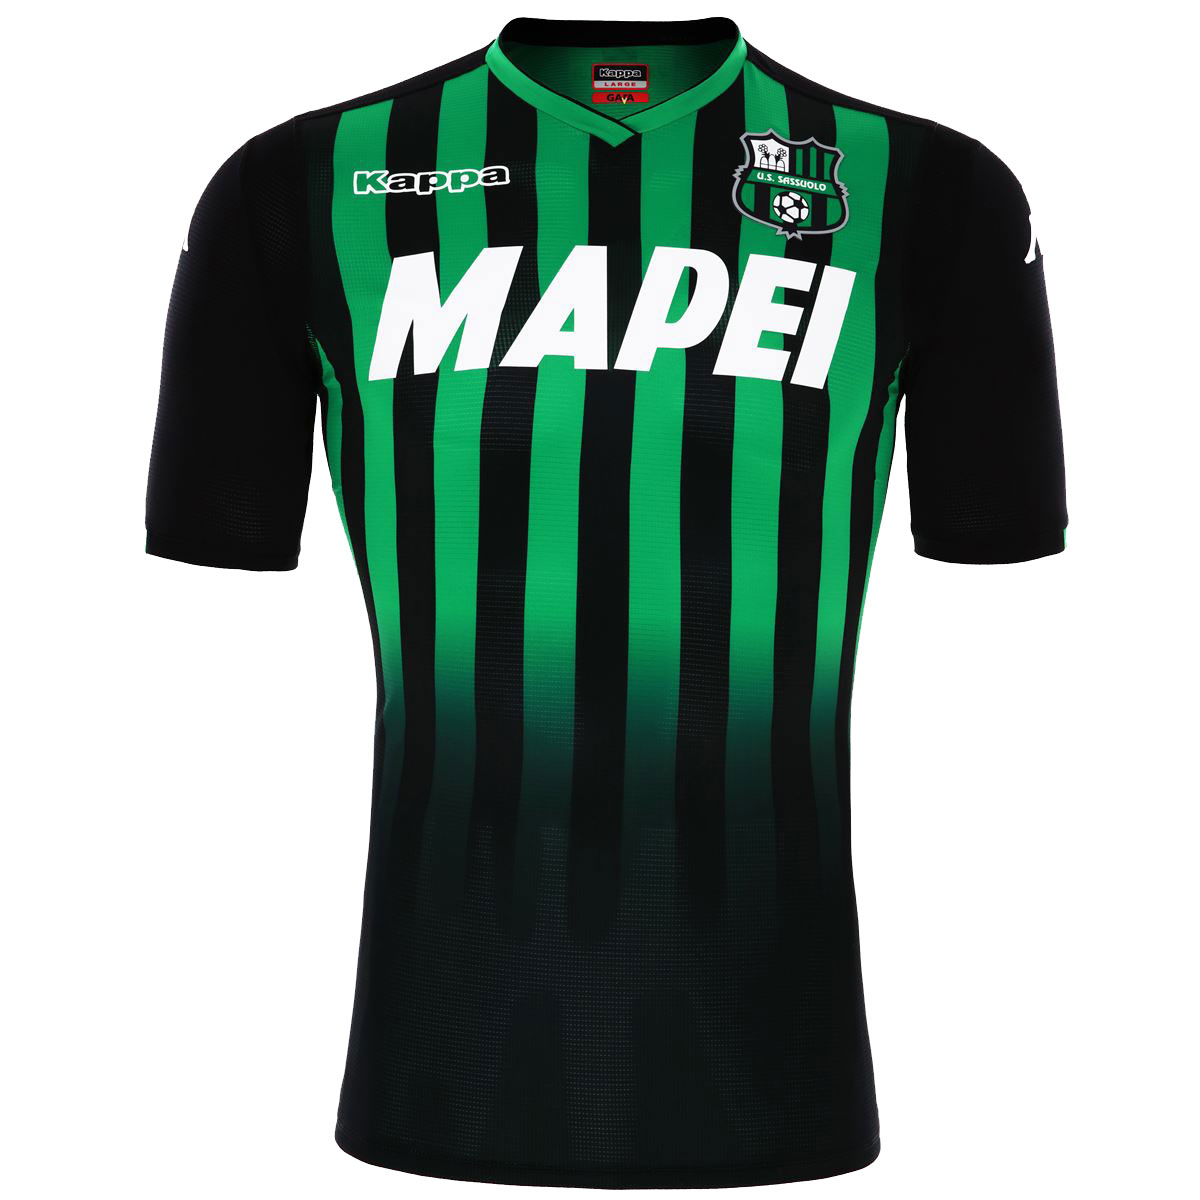 Sassuolo Home shirt